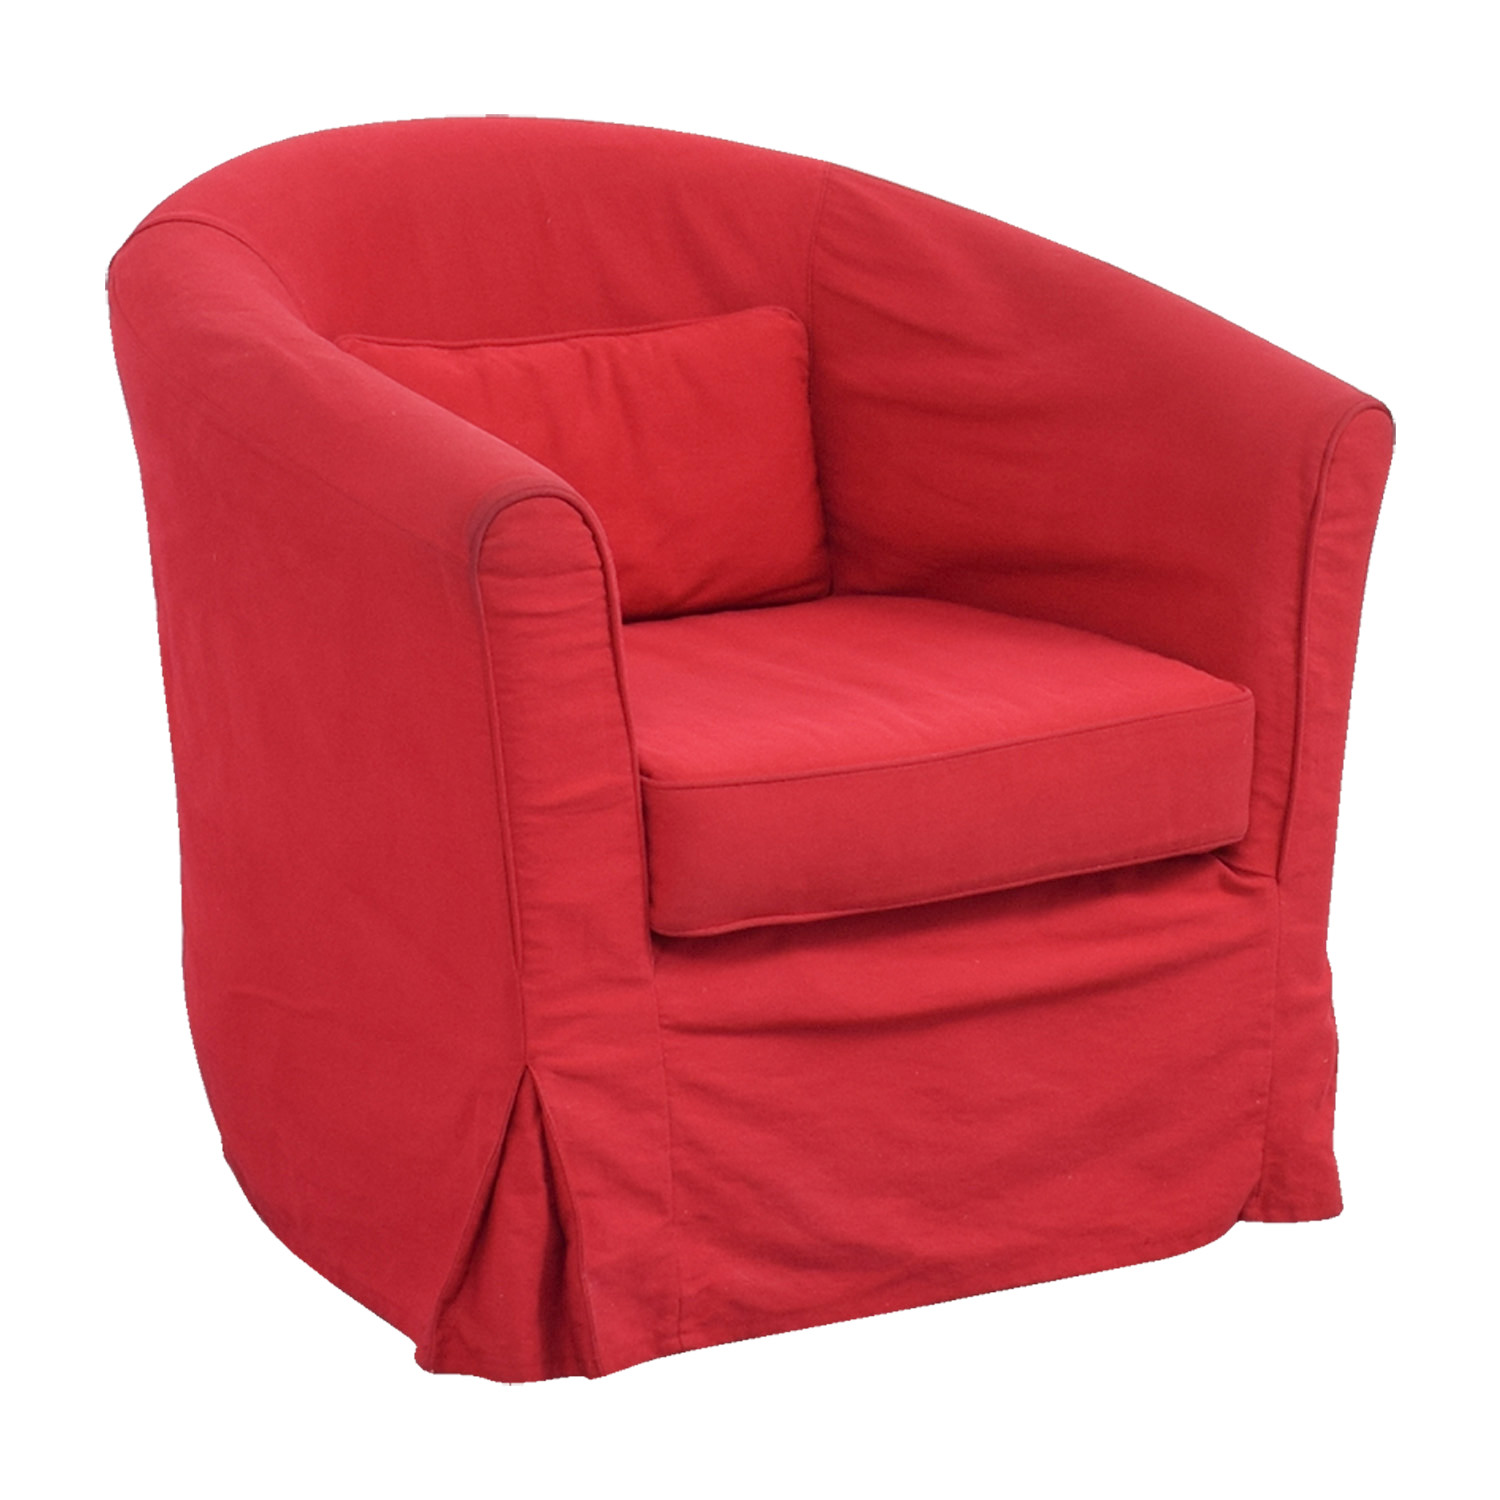 Surprising 82 Off Crate Barrel Crate Barrel Red Upholstered Chair With Removable Cover Chairs Gamerscity Chair Design For Home Gamerscityorg